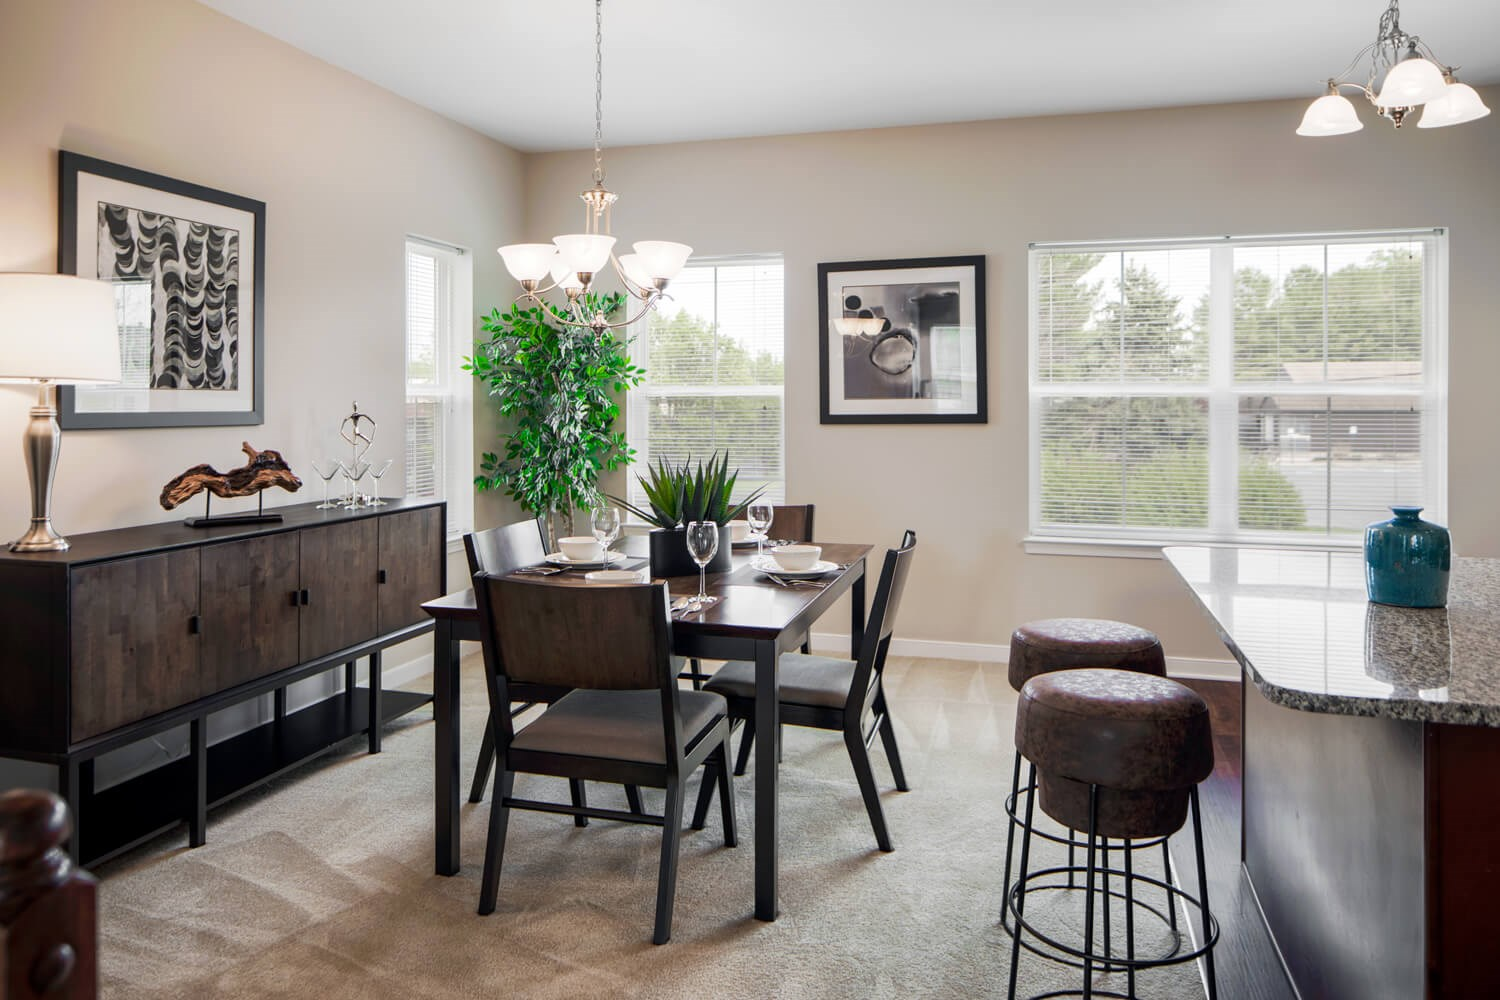 Gourmet Kitchens with Islands, Caesarstone Countertops, and Decorative Backsplash at Townes at Pine Orchard, Maryland 21042